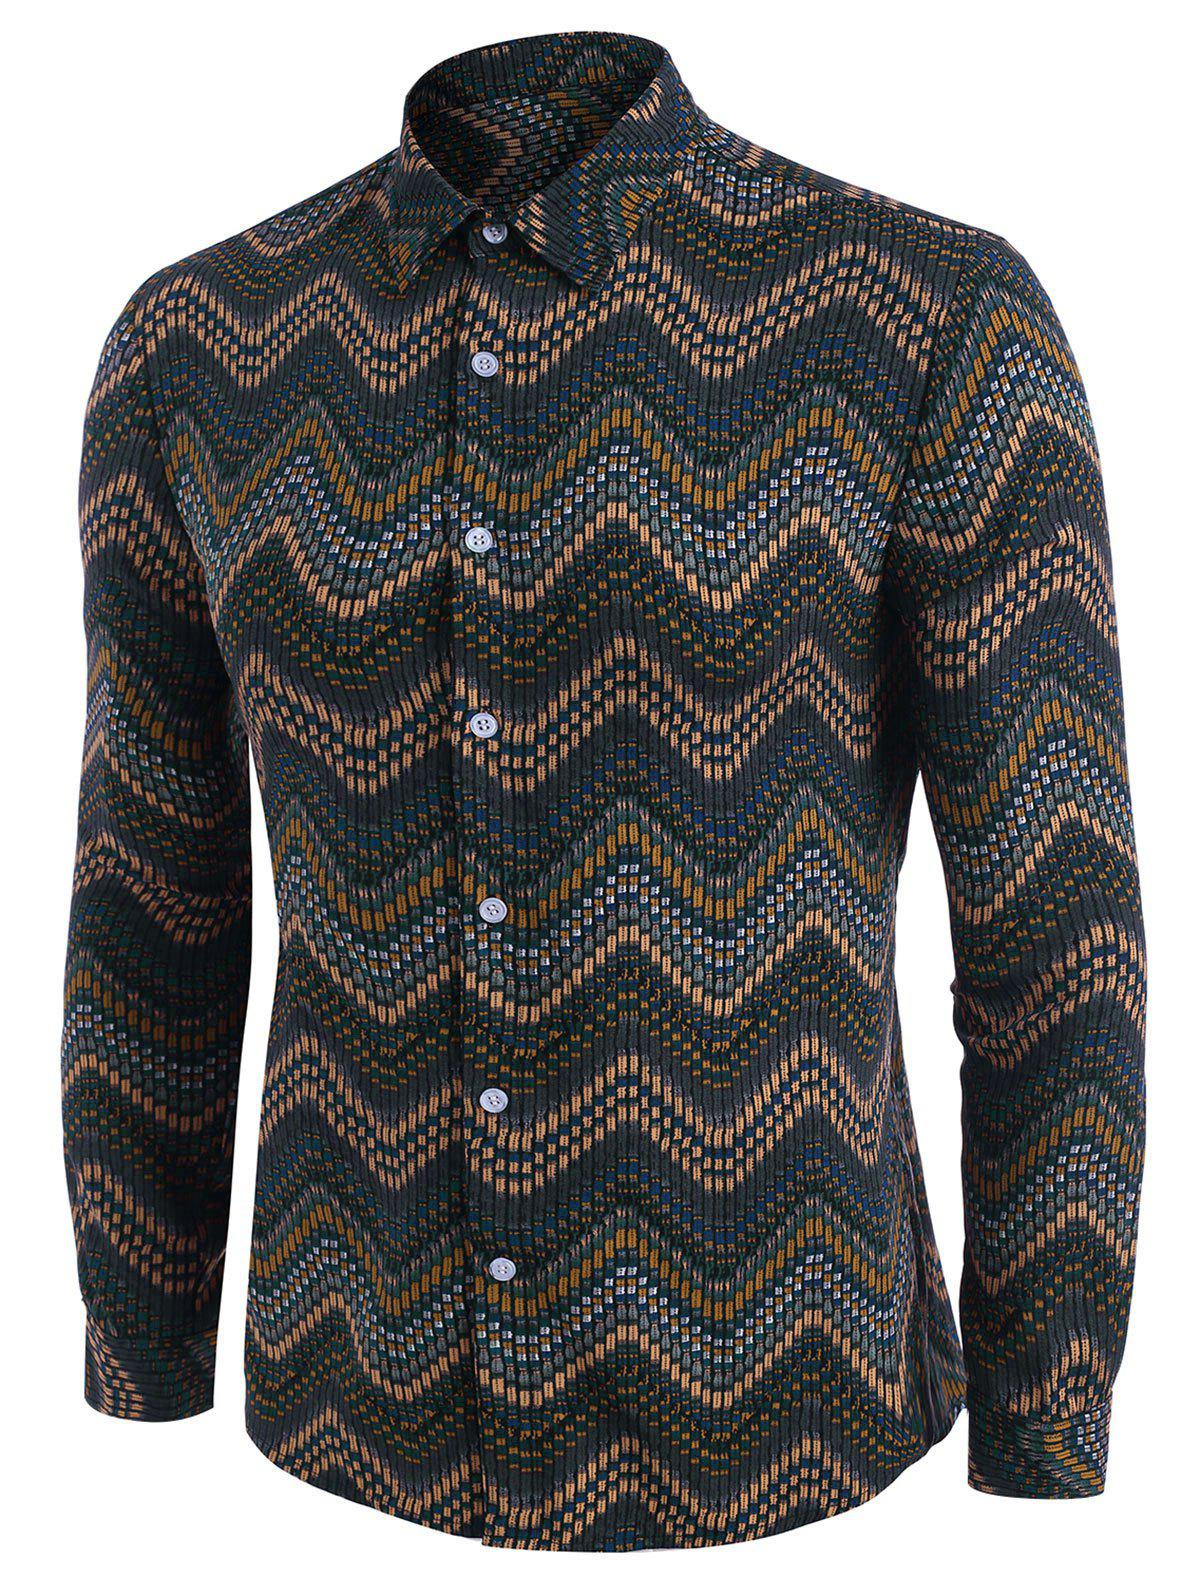 Tribal Zigzag Print Long Sleeve Shirt - DEEP YELLOW M